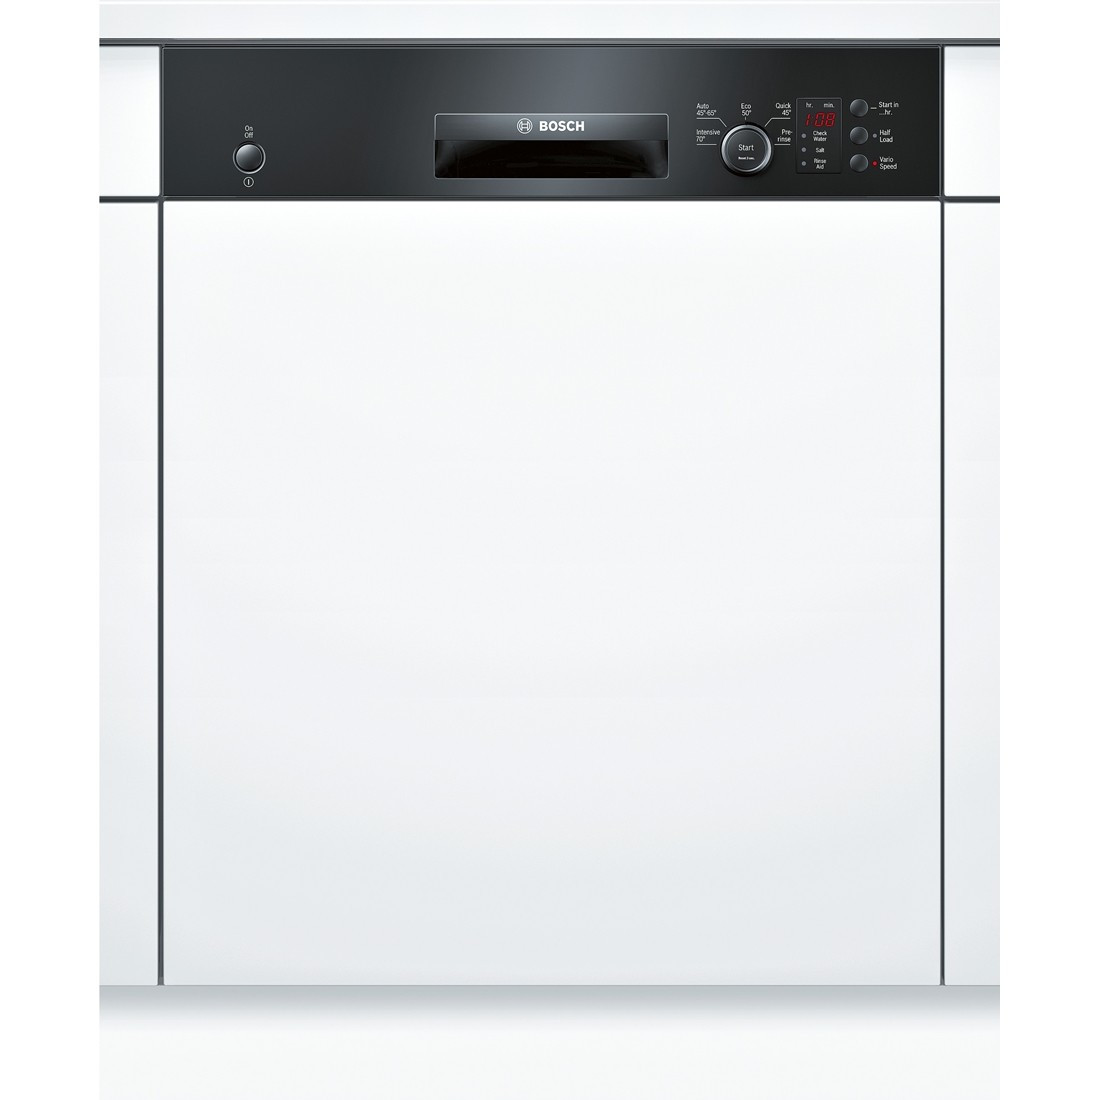 Bosch Serie 4 SMI50C16GB Black Semi-Integrated Dishwasher